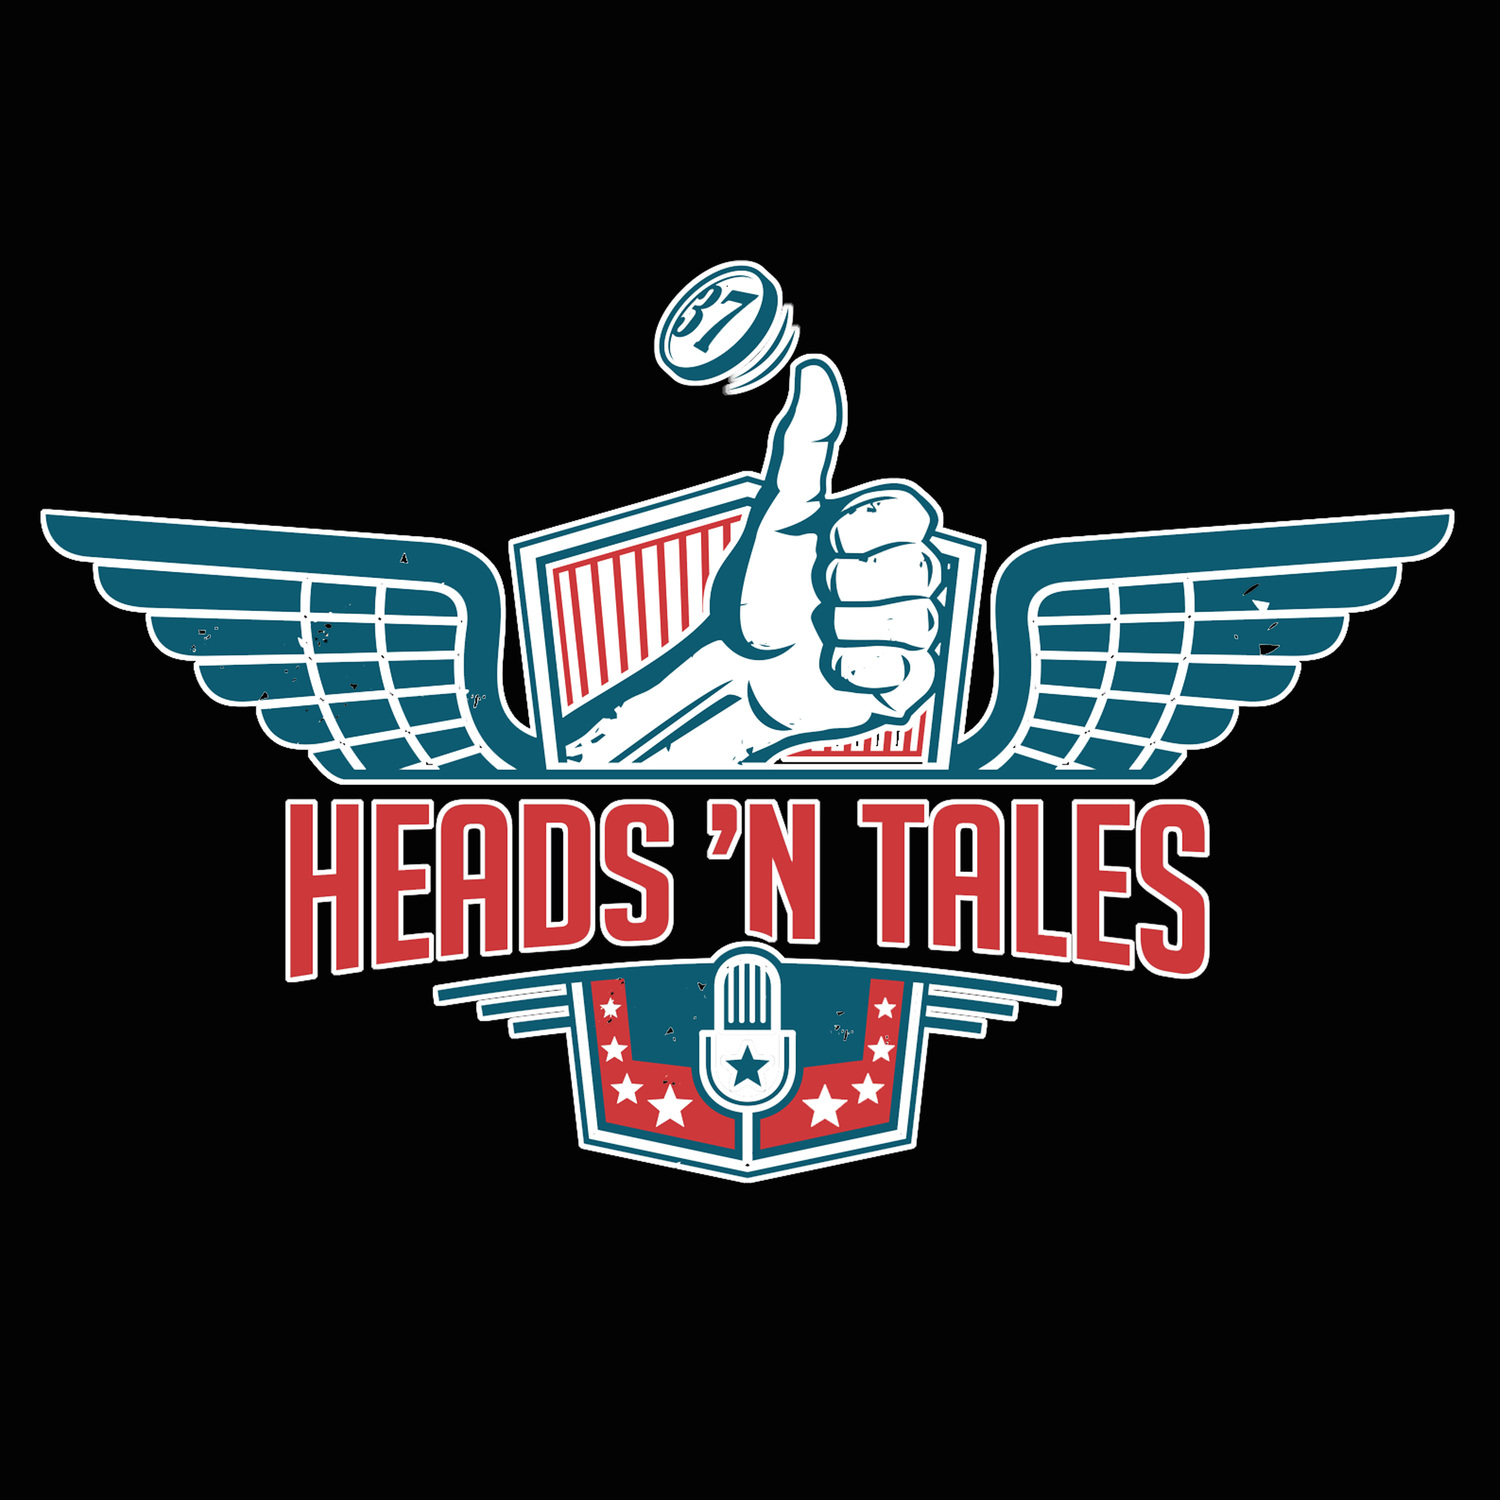 Heads 'N Tales-Talking Sports Injury Rehab, Prevention, Perseverance & Concussions